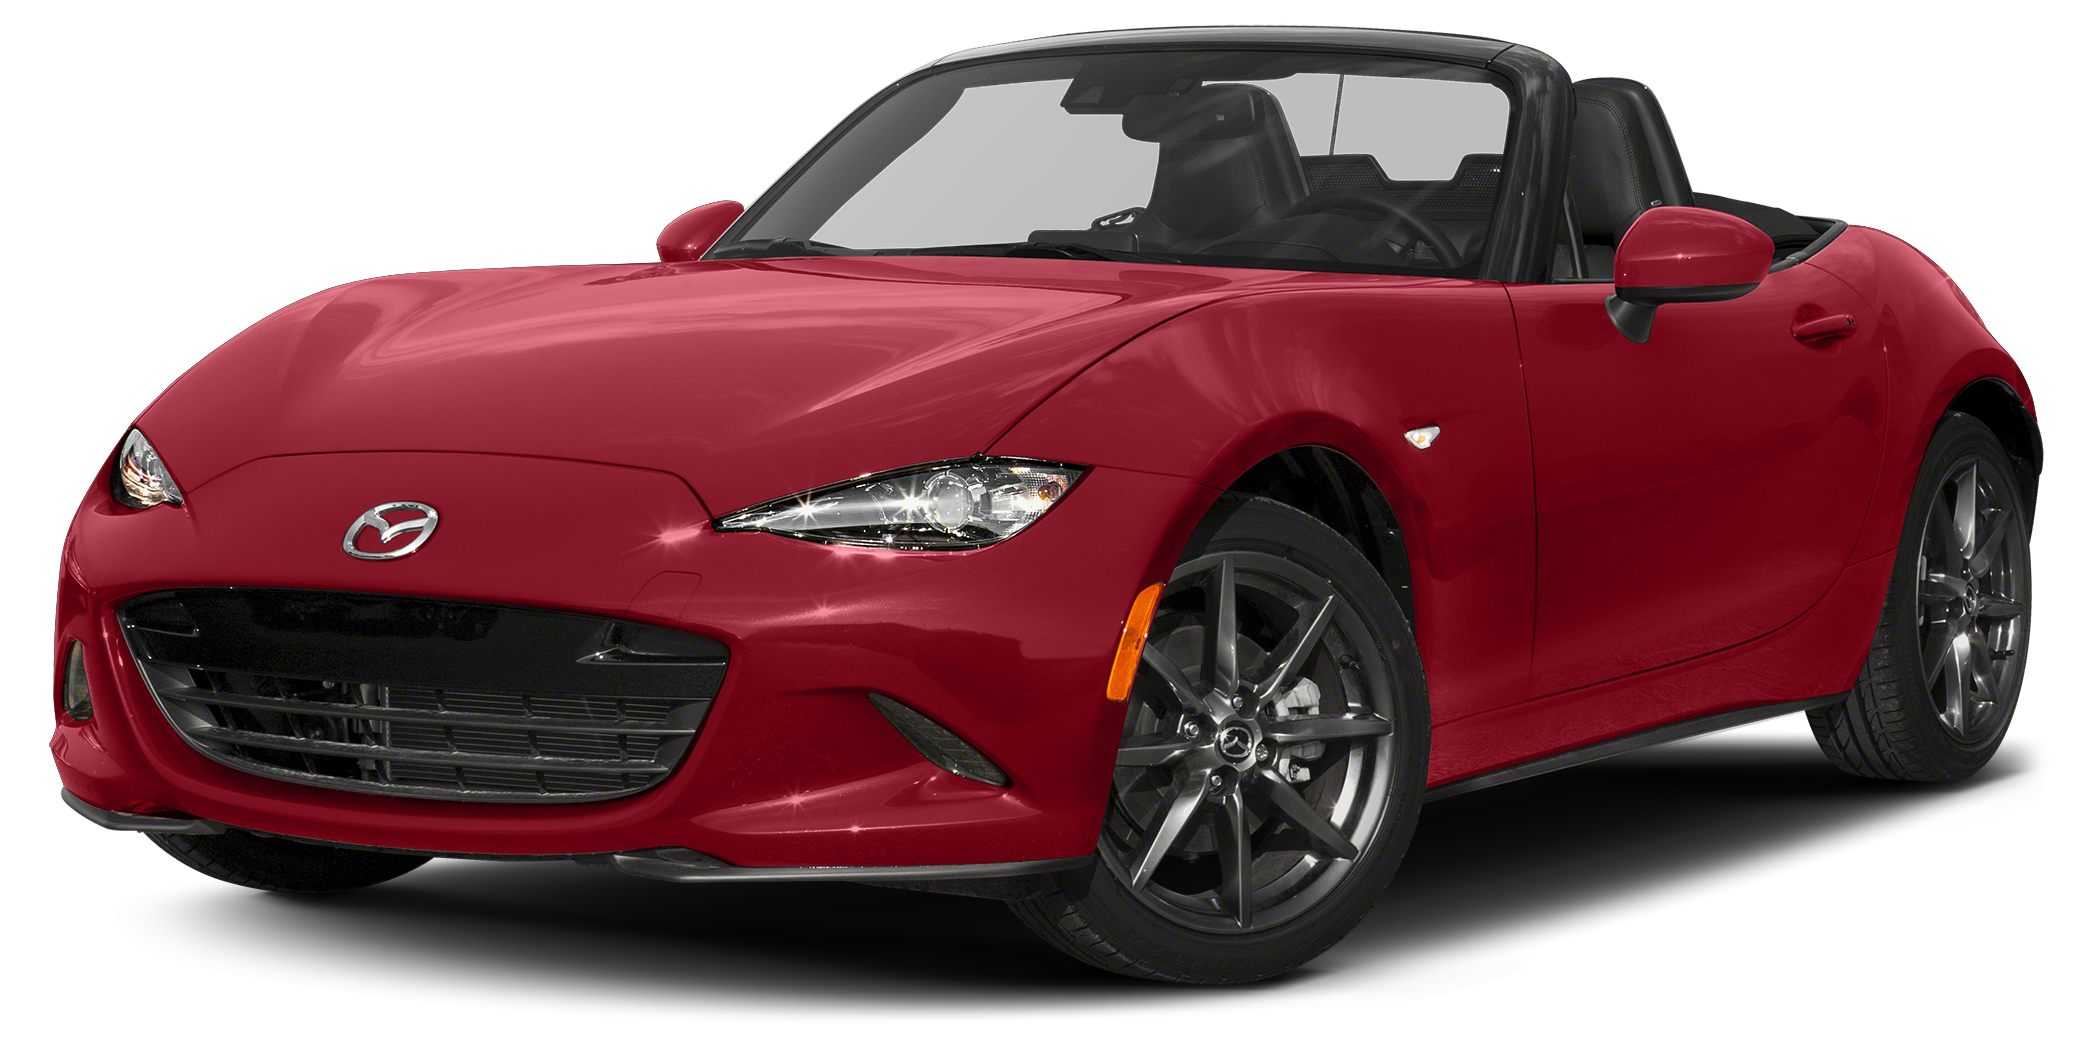 2016 Mazda Miata Grand Touring Introducing the 2016 Mazda Mazda MX-5 Miata Packed with features a